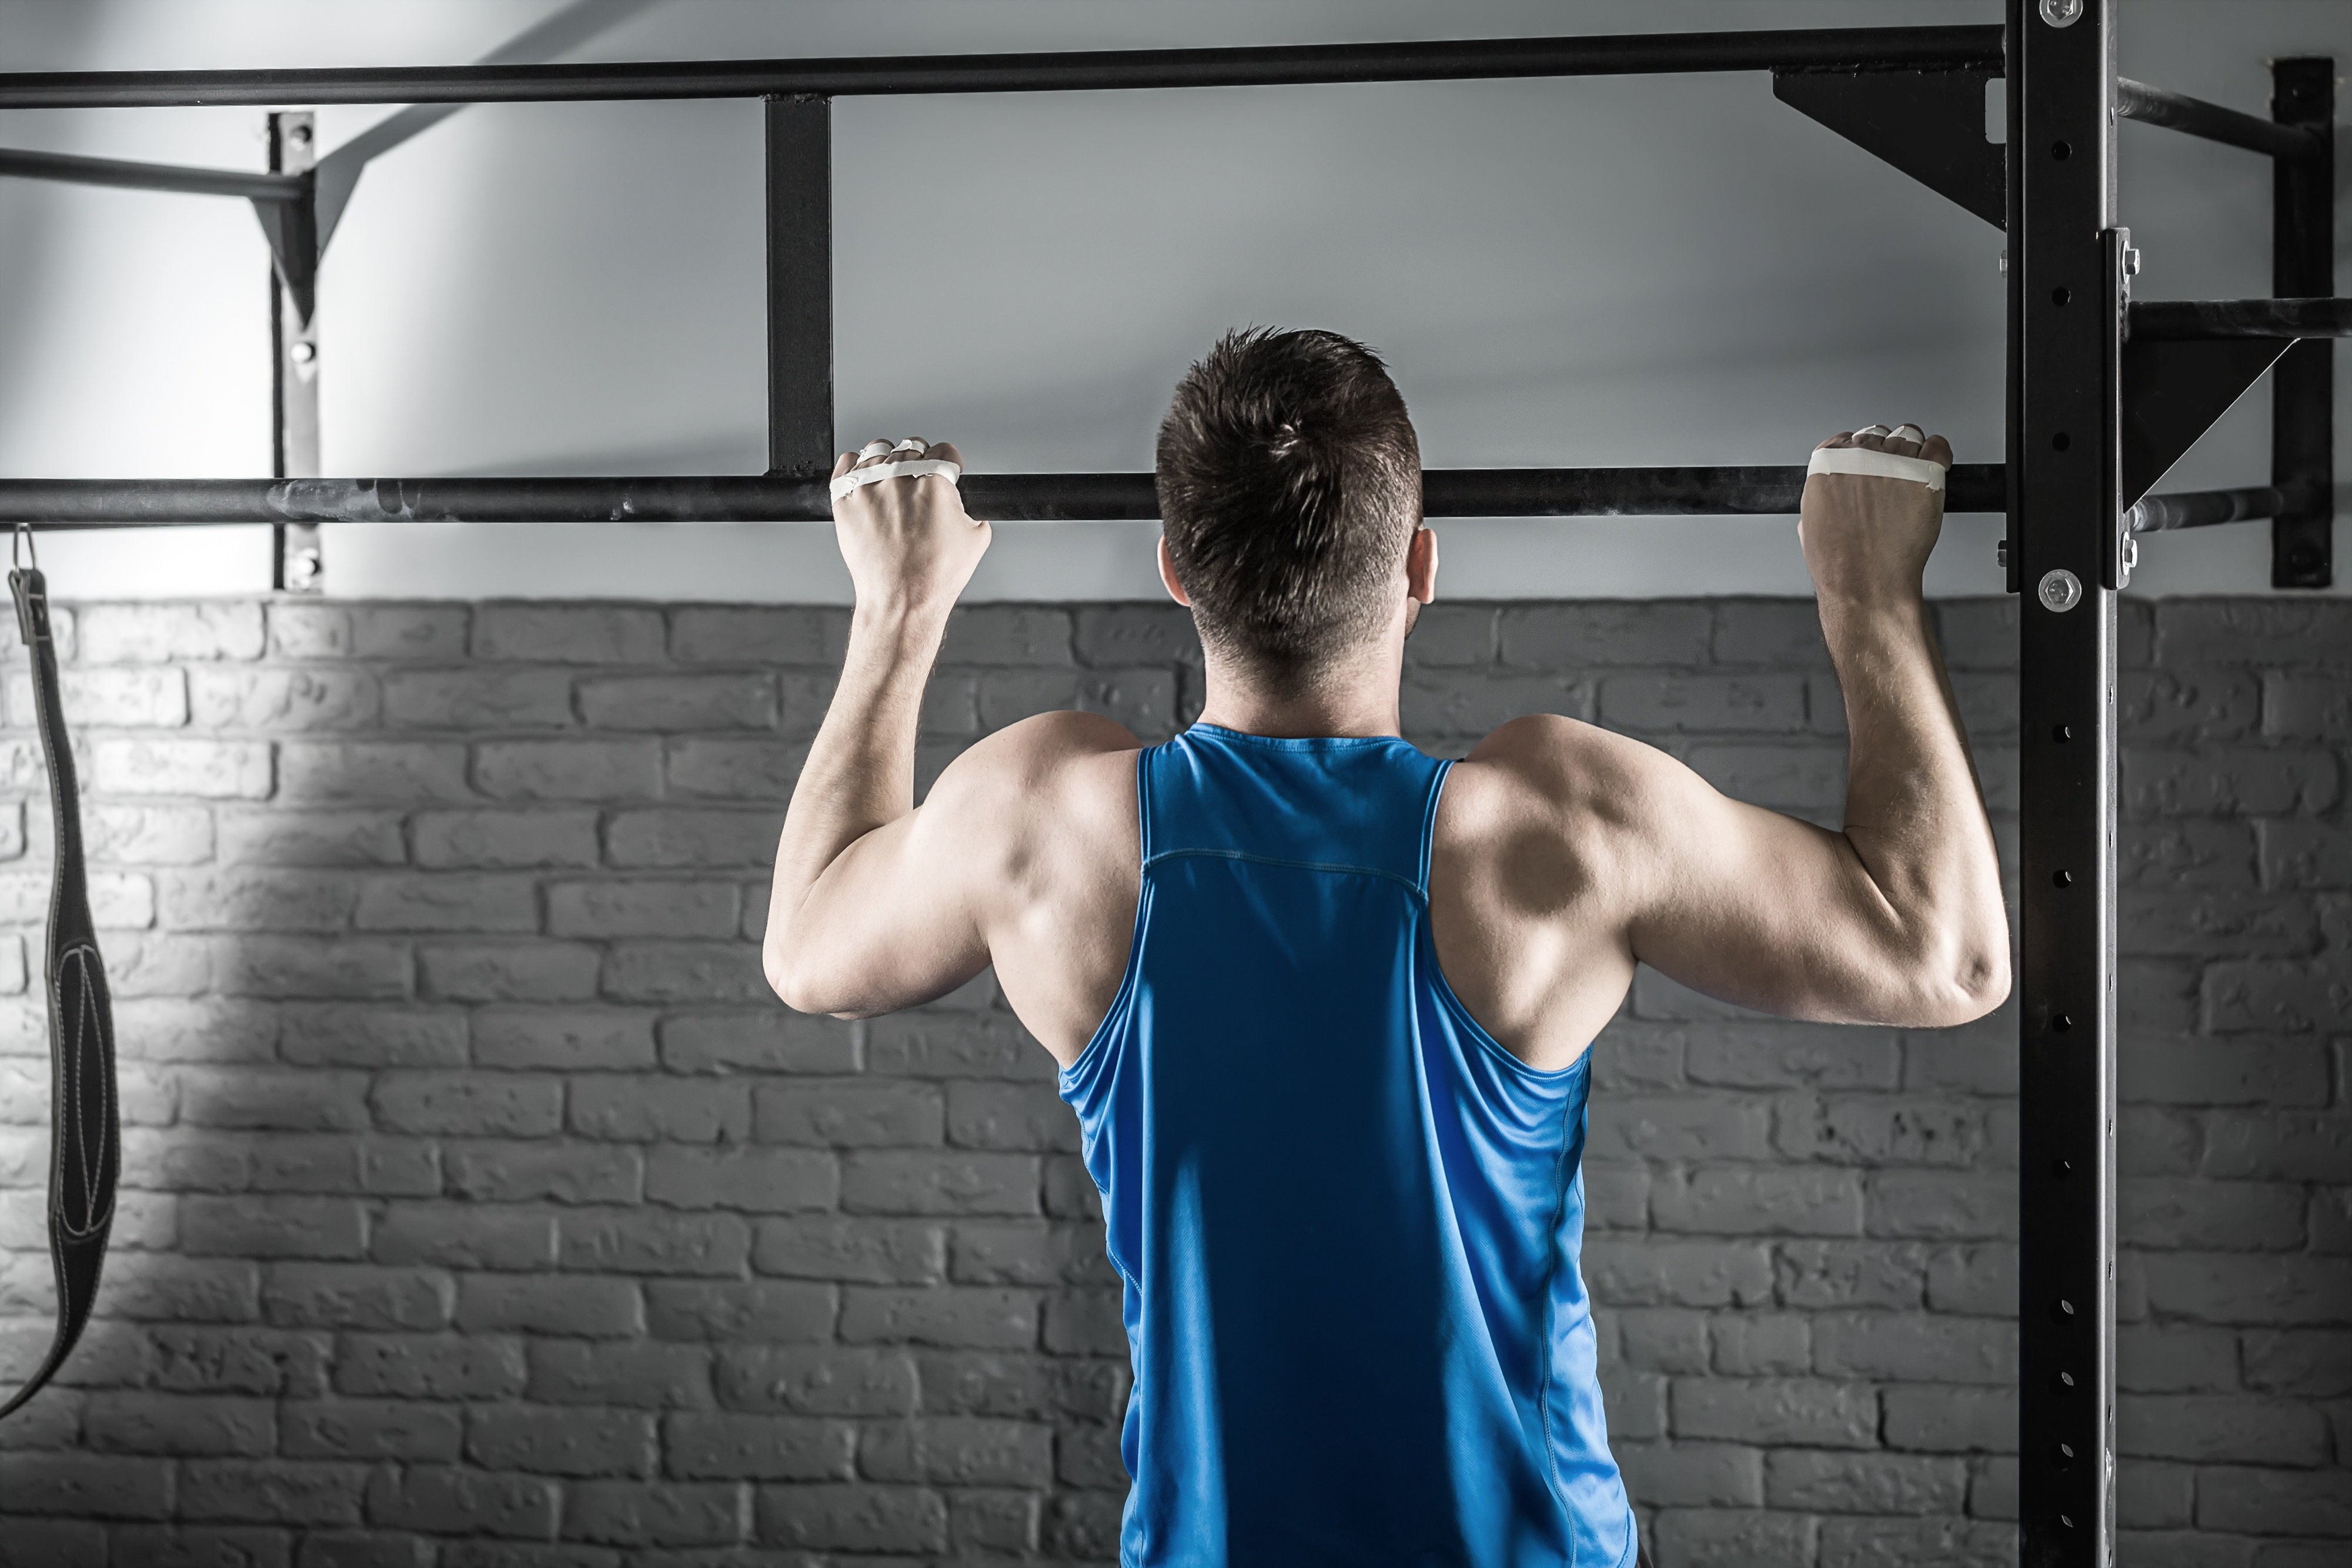 pull-up progression to improve strength to weight ratio, Muscles